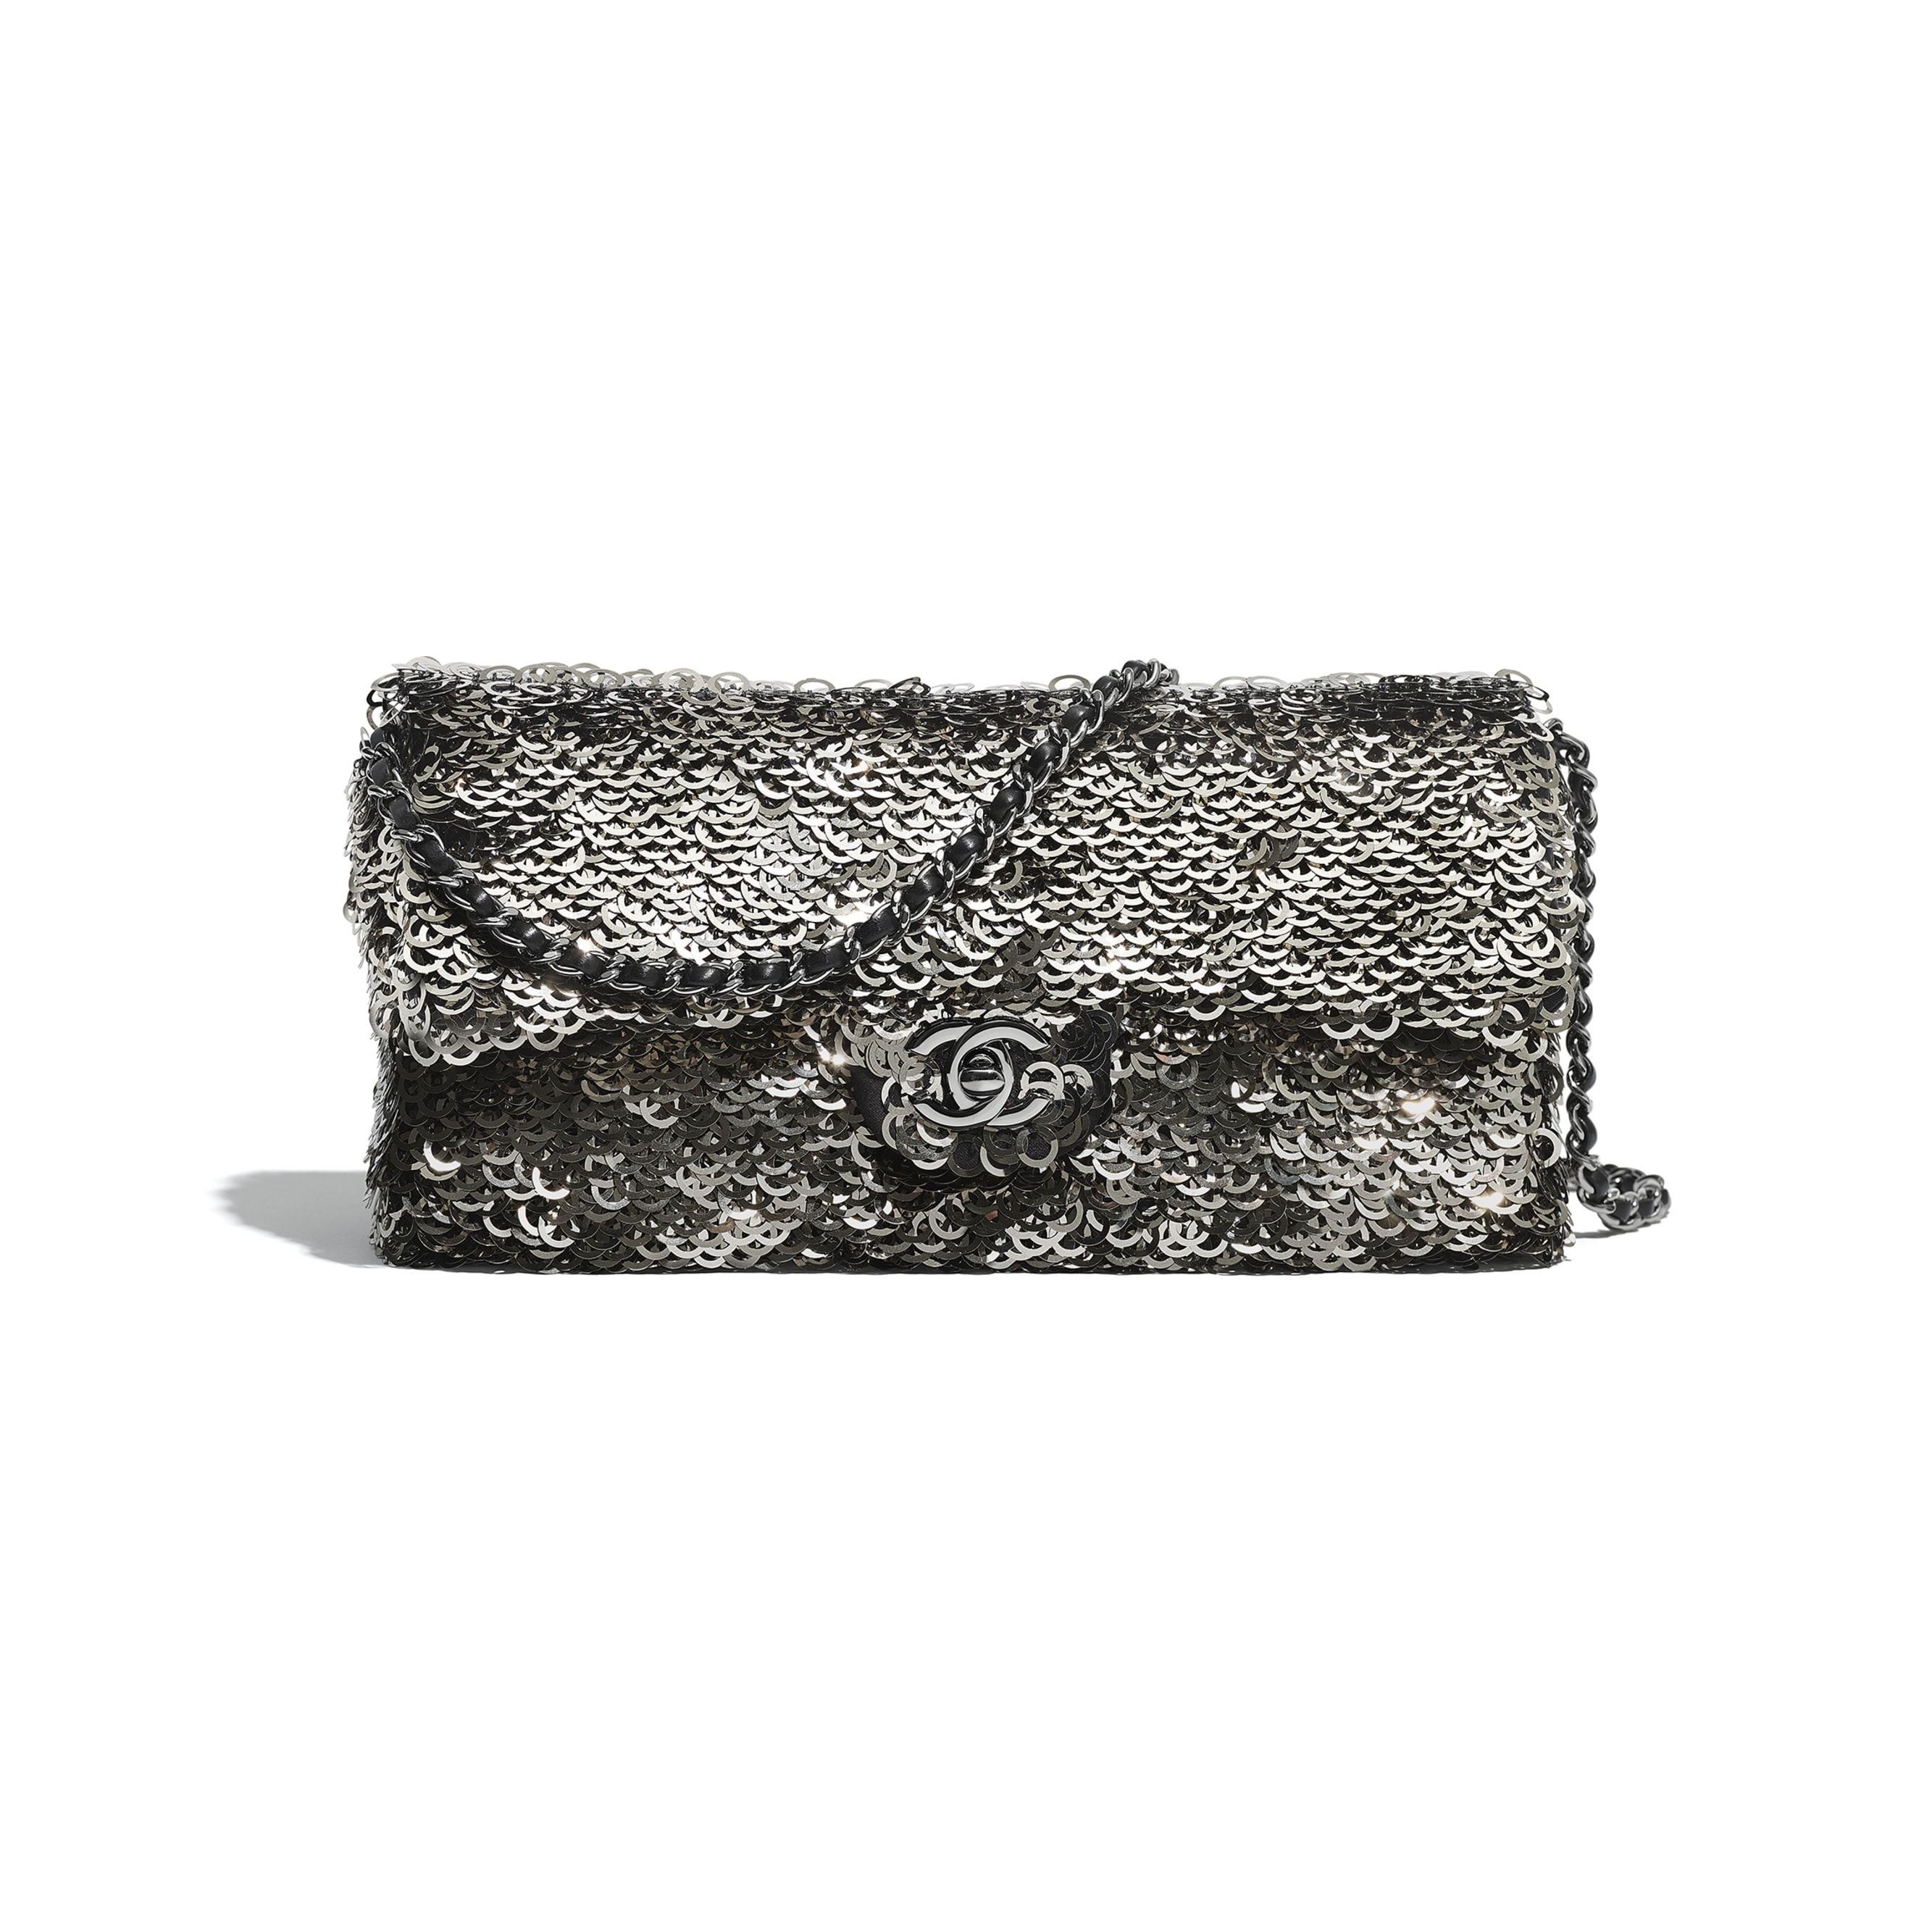 Flap Bag - Black, Silver & White - Sequins & Ruthenium-Finish Metal - Default view - see standard sized version